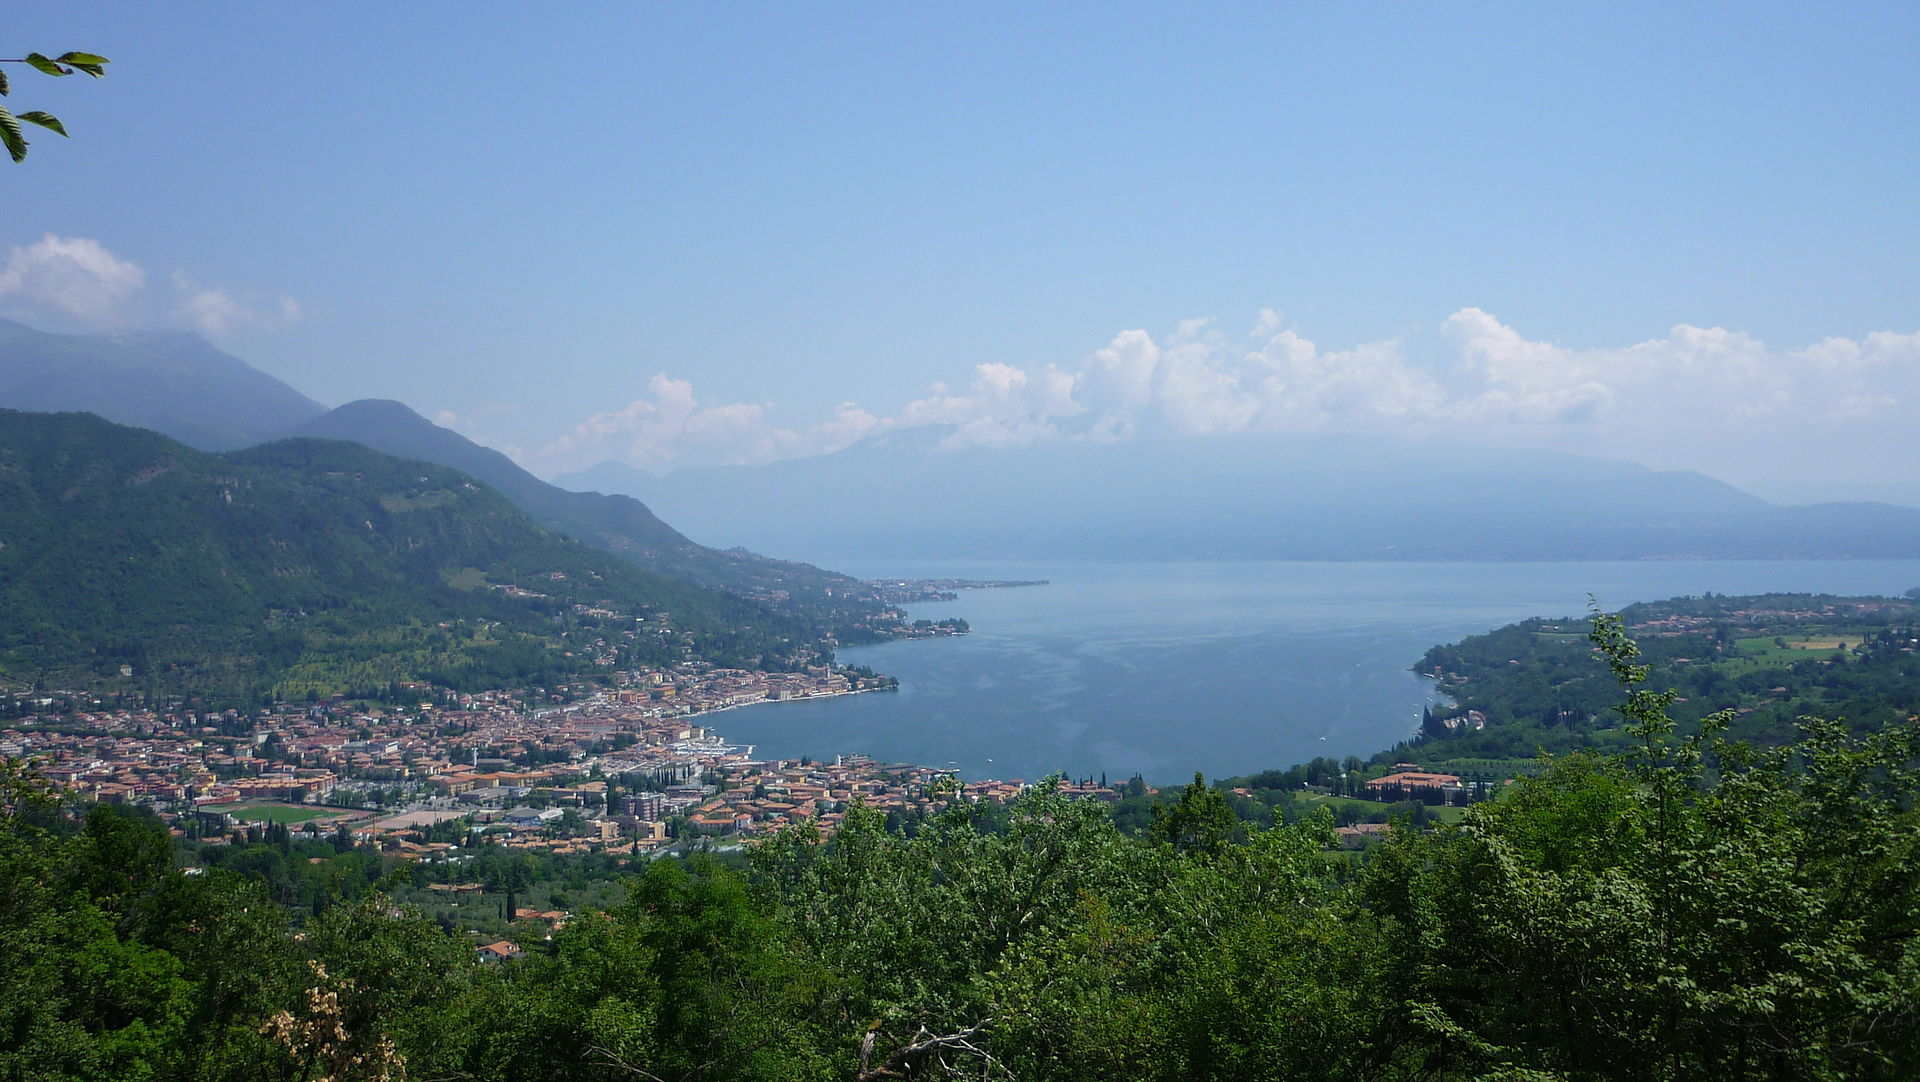 View of Salò and its bay